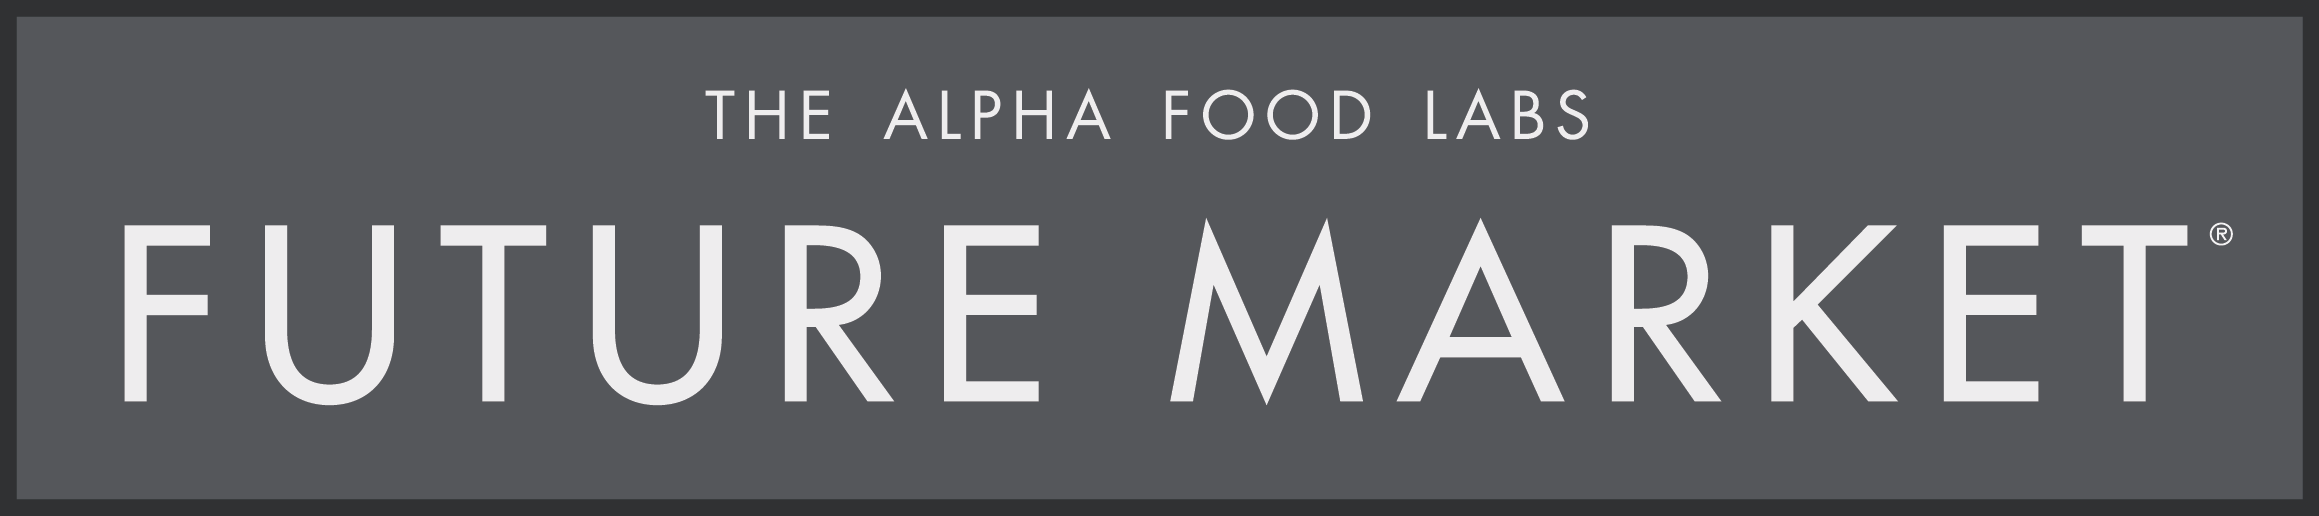 The Future Market Logo - Alpha Version 2018 - Outlines.png